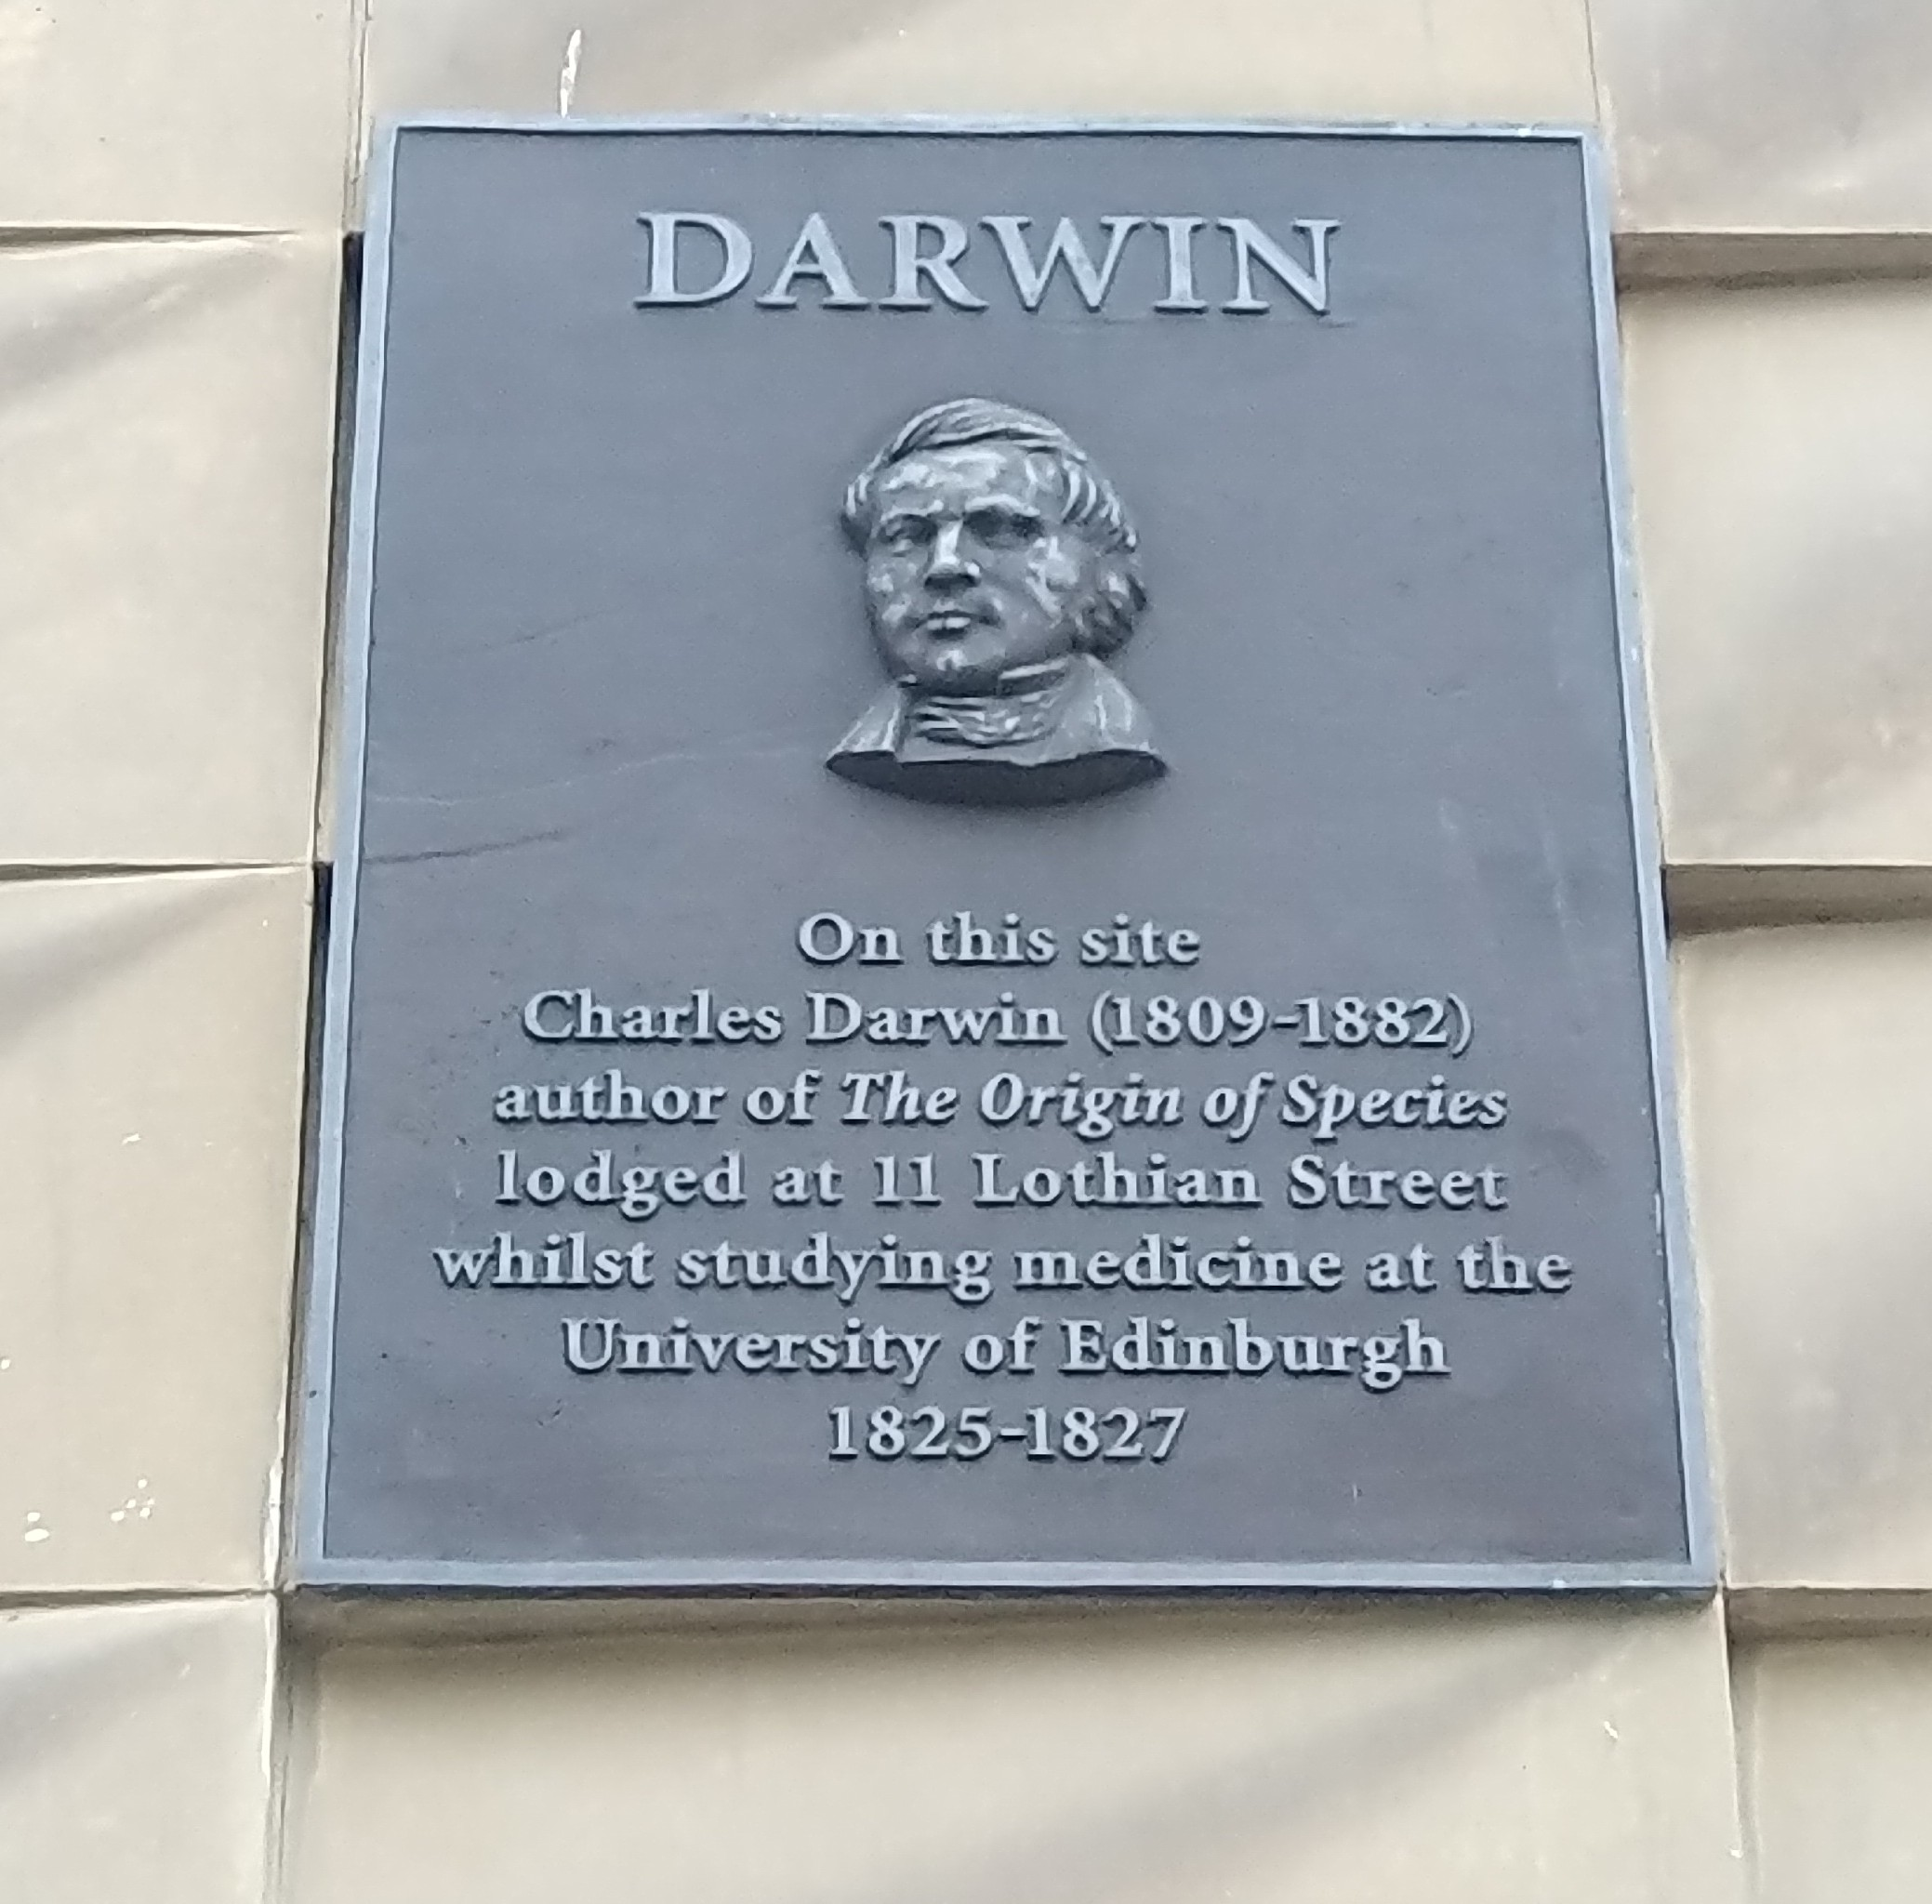 "Photograph of the Charles Darwin plaque on Lothian Street, Edinburgh, which says ""On this site Charles Darwin (1809-1882) author of The Origin of Spieces lodged at 11 Lothian Street whilst studying medicine at the University of Edinburgh 1825-1827"